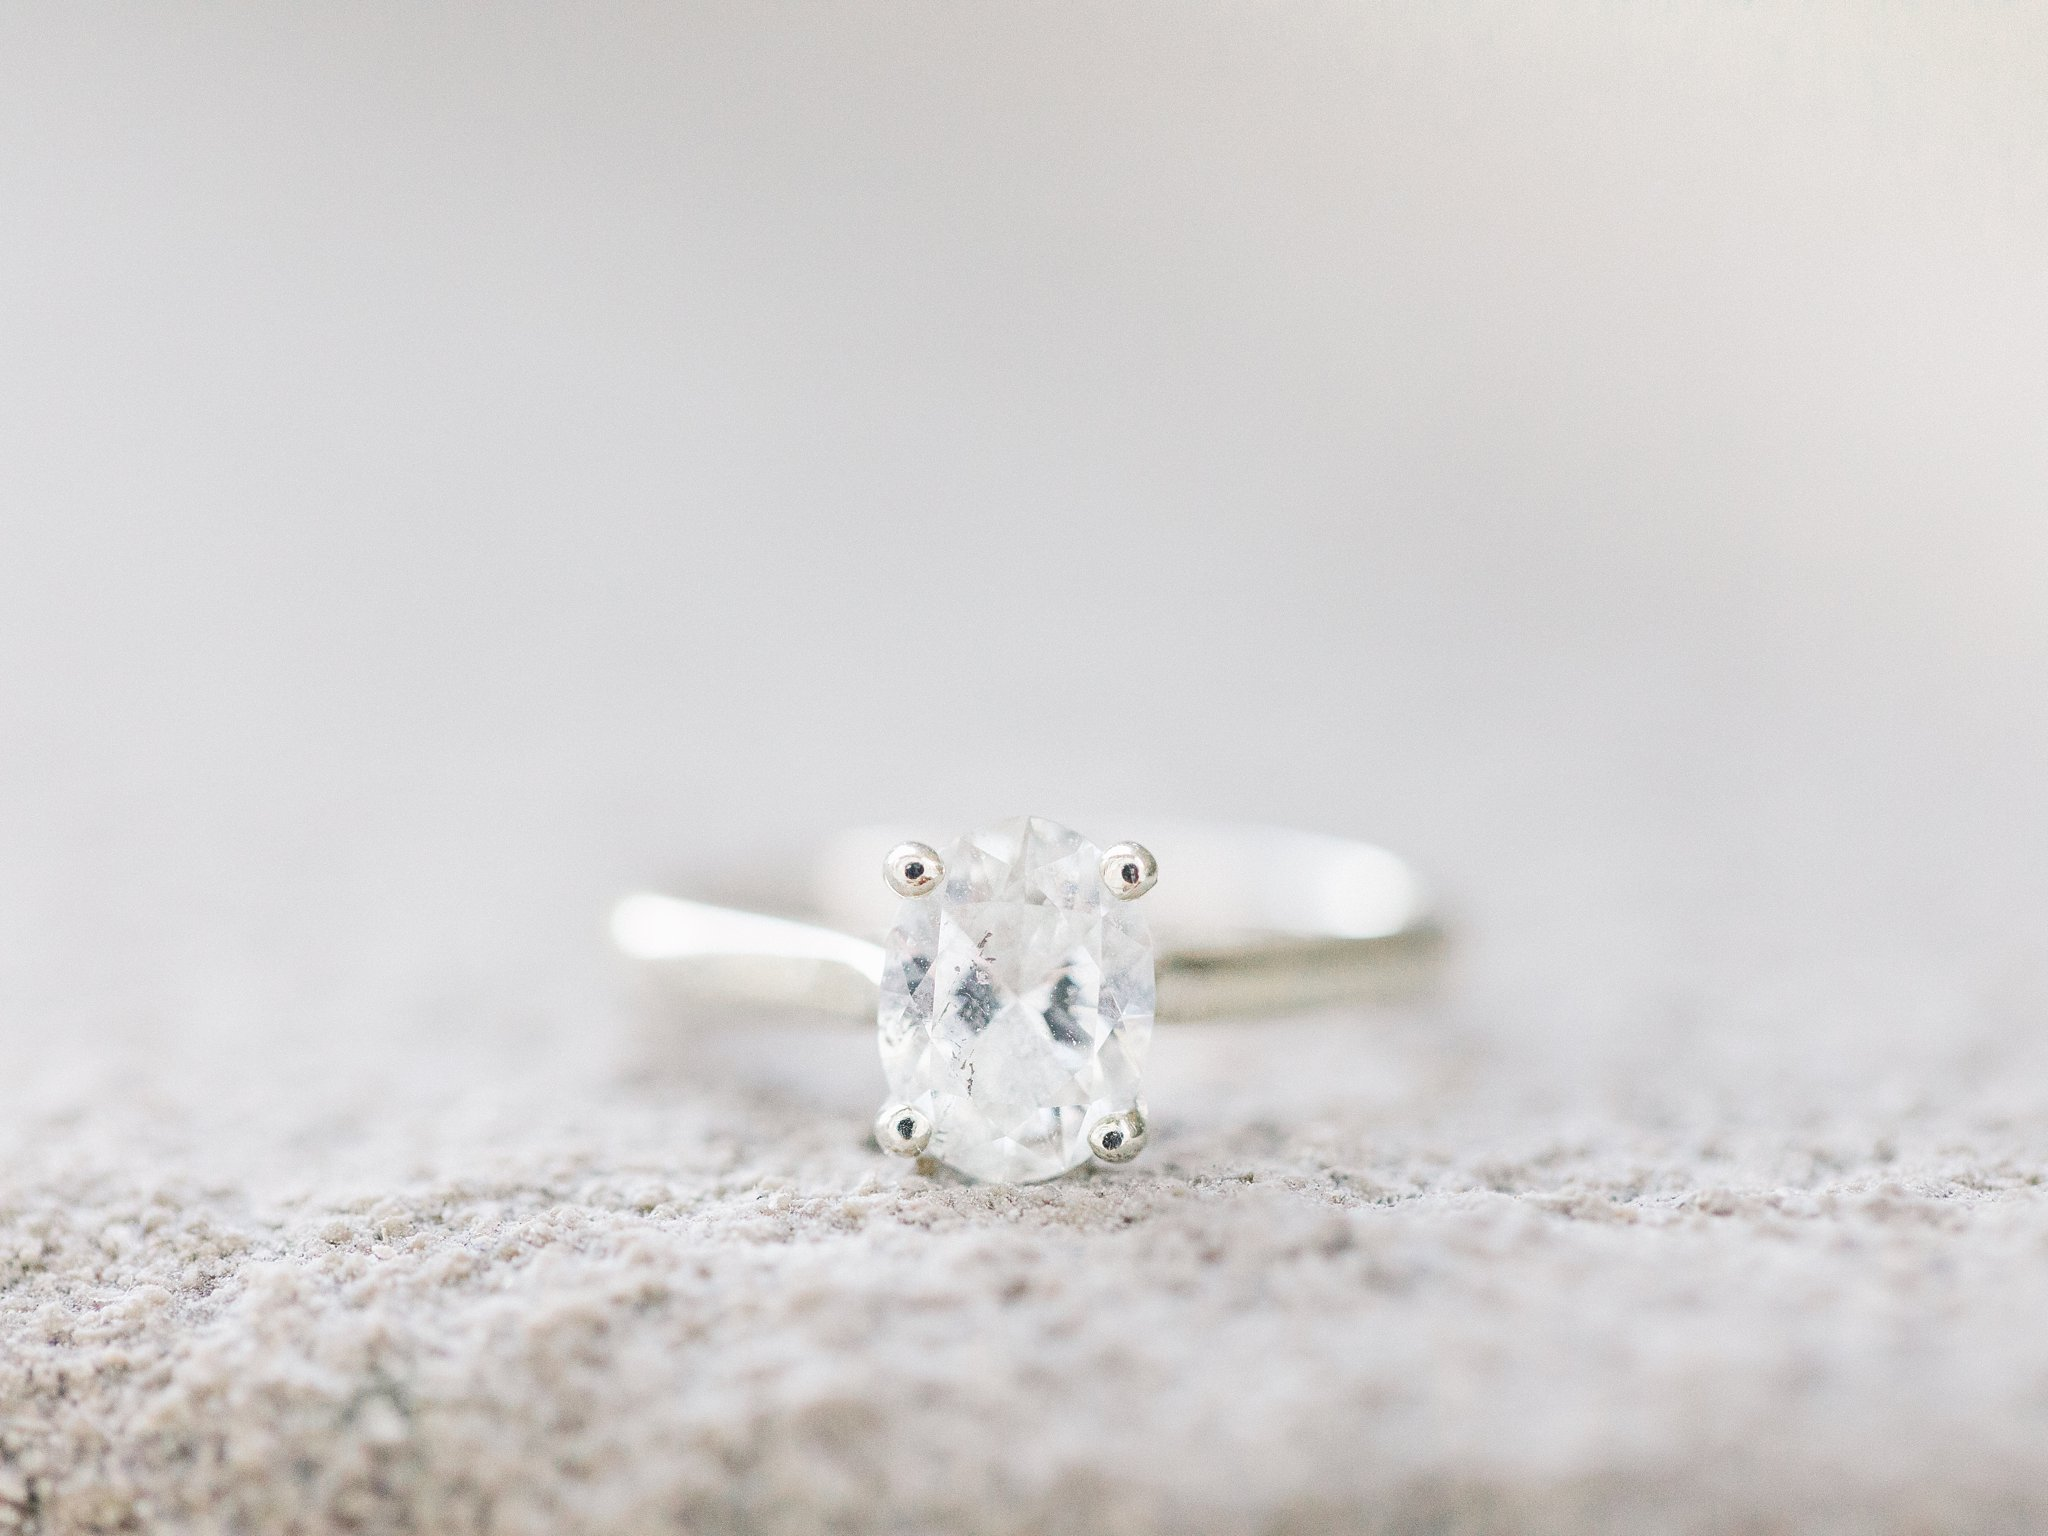 Oval diamond engagement ring Ottawa University engagement photos